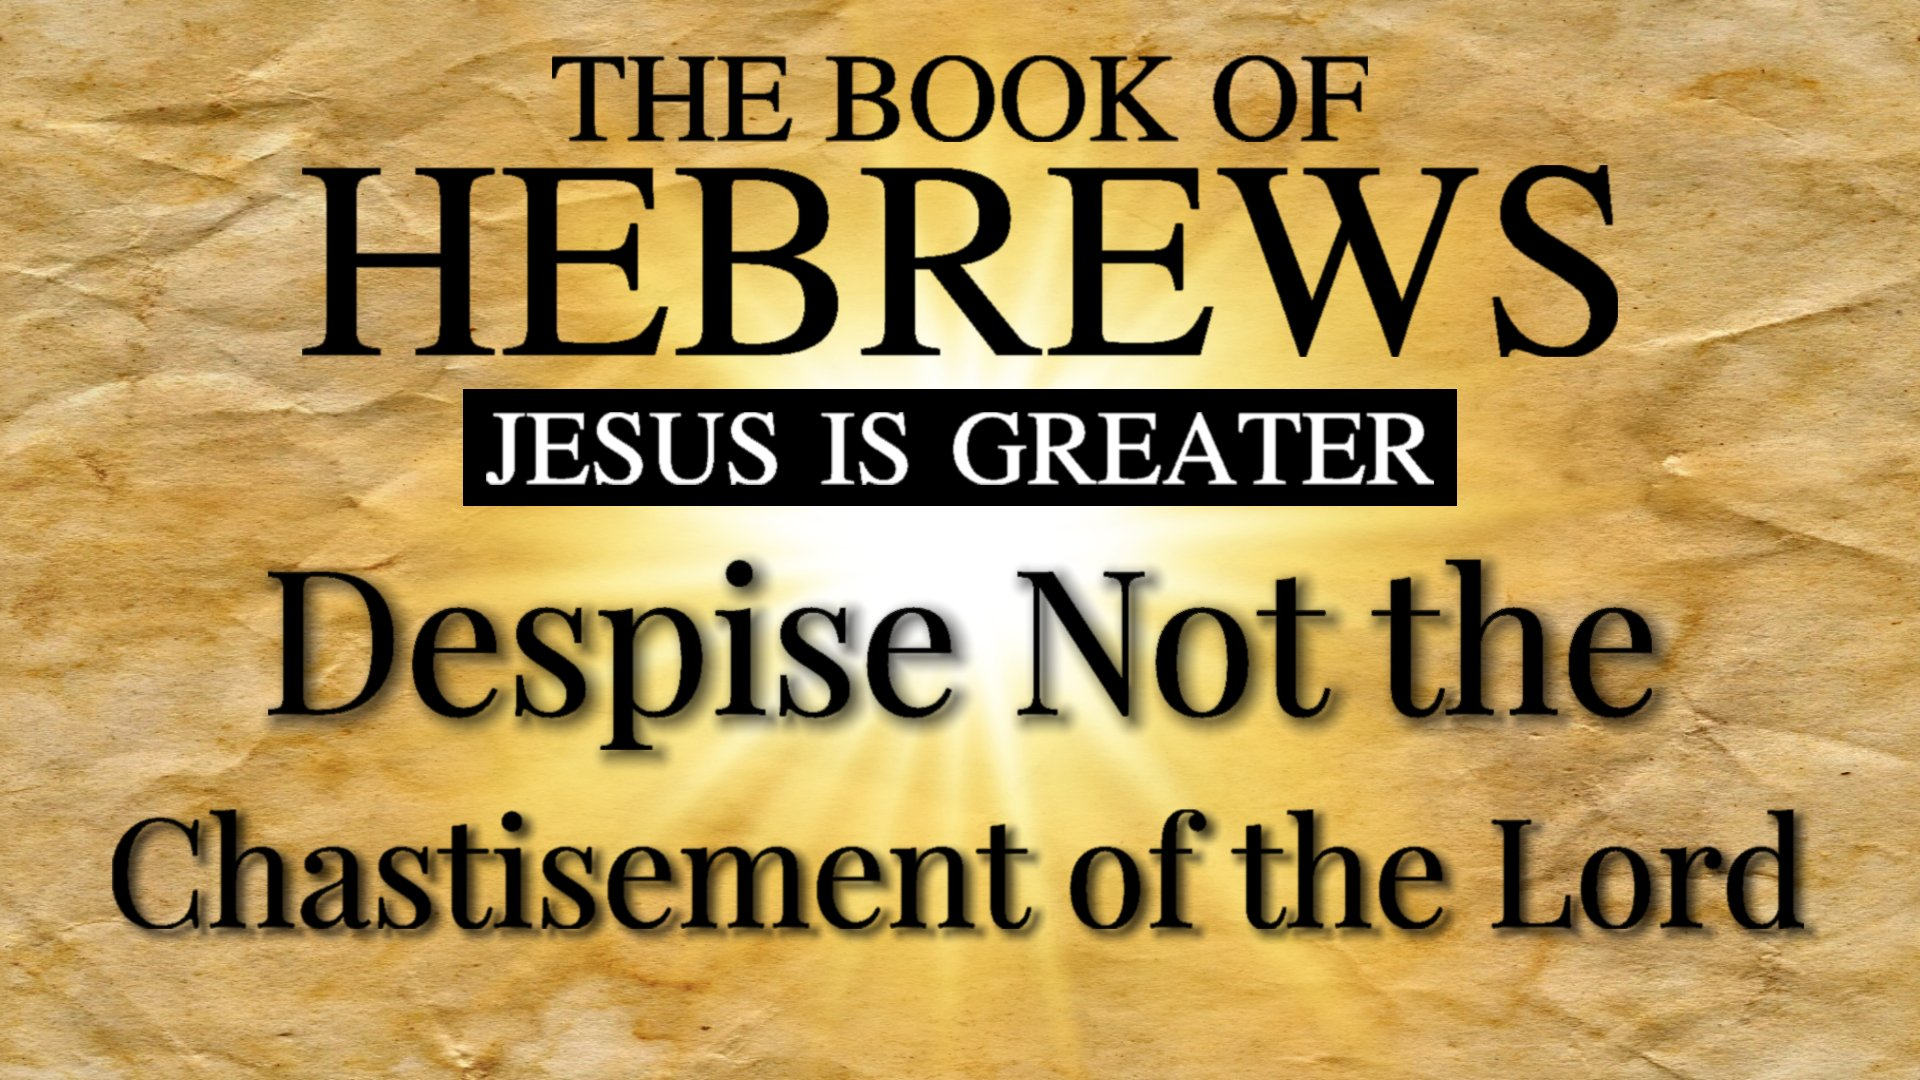 23 Despise Not the Chastisement of the Lord